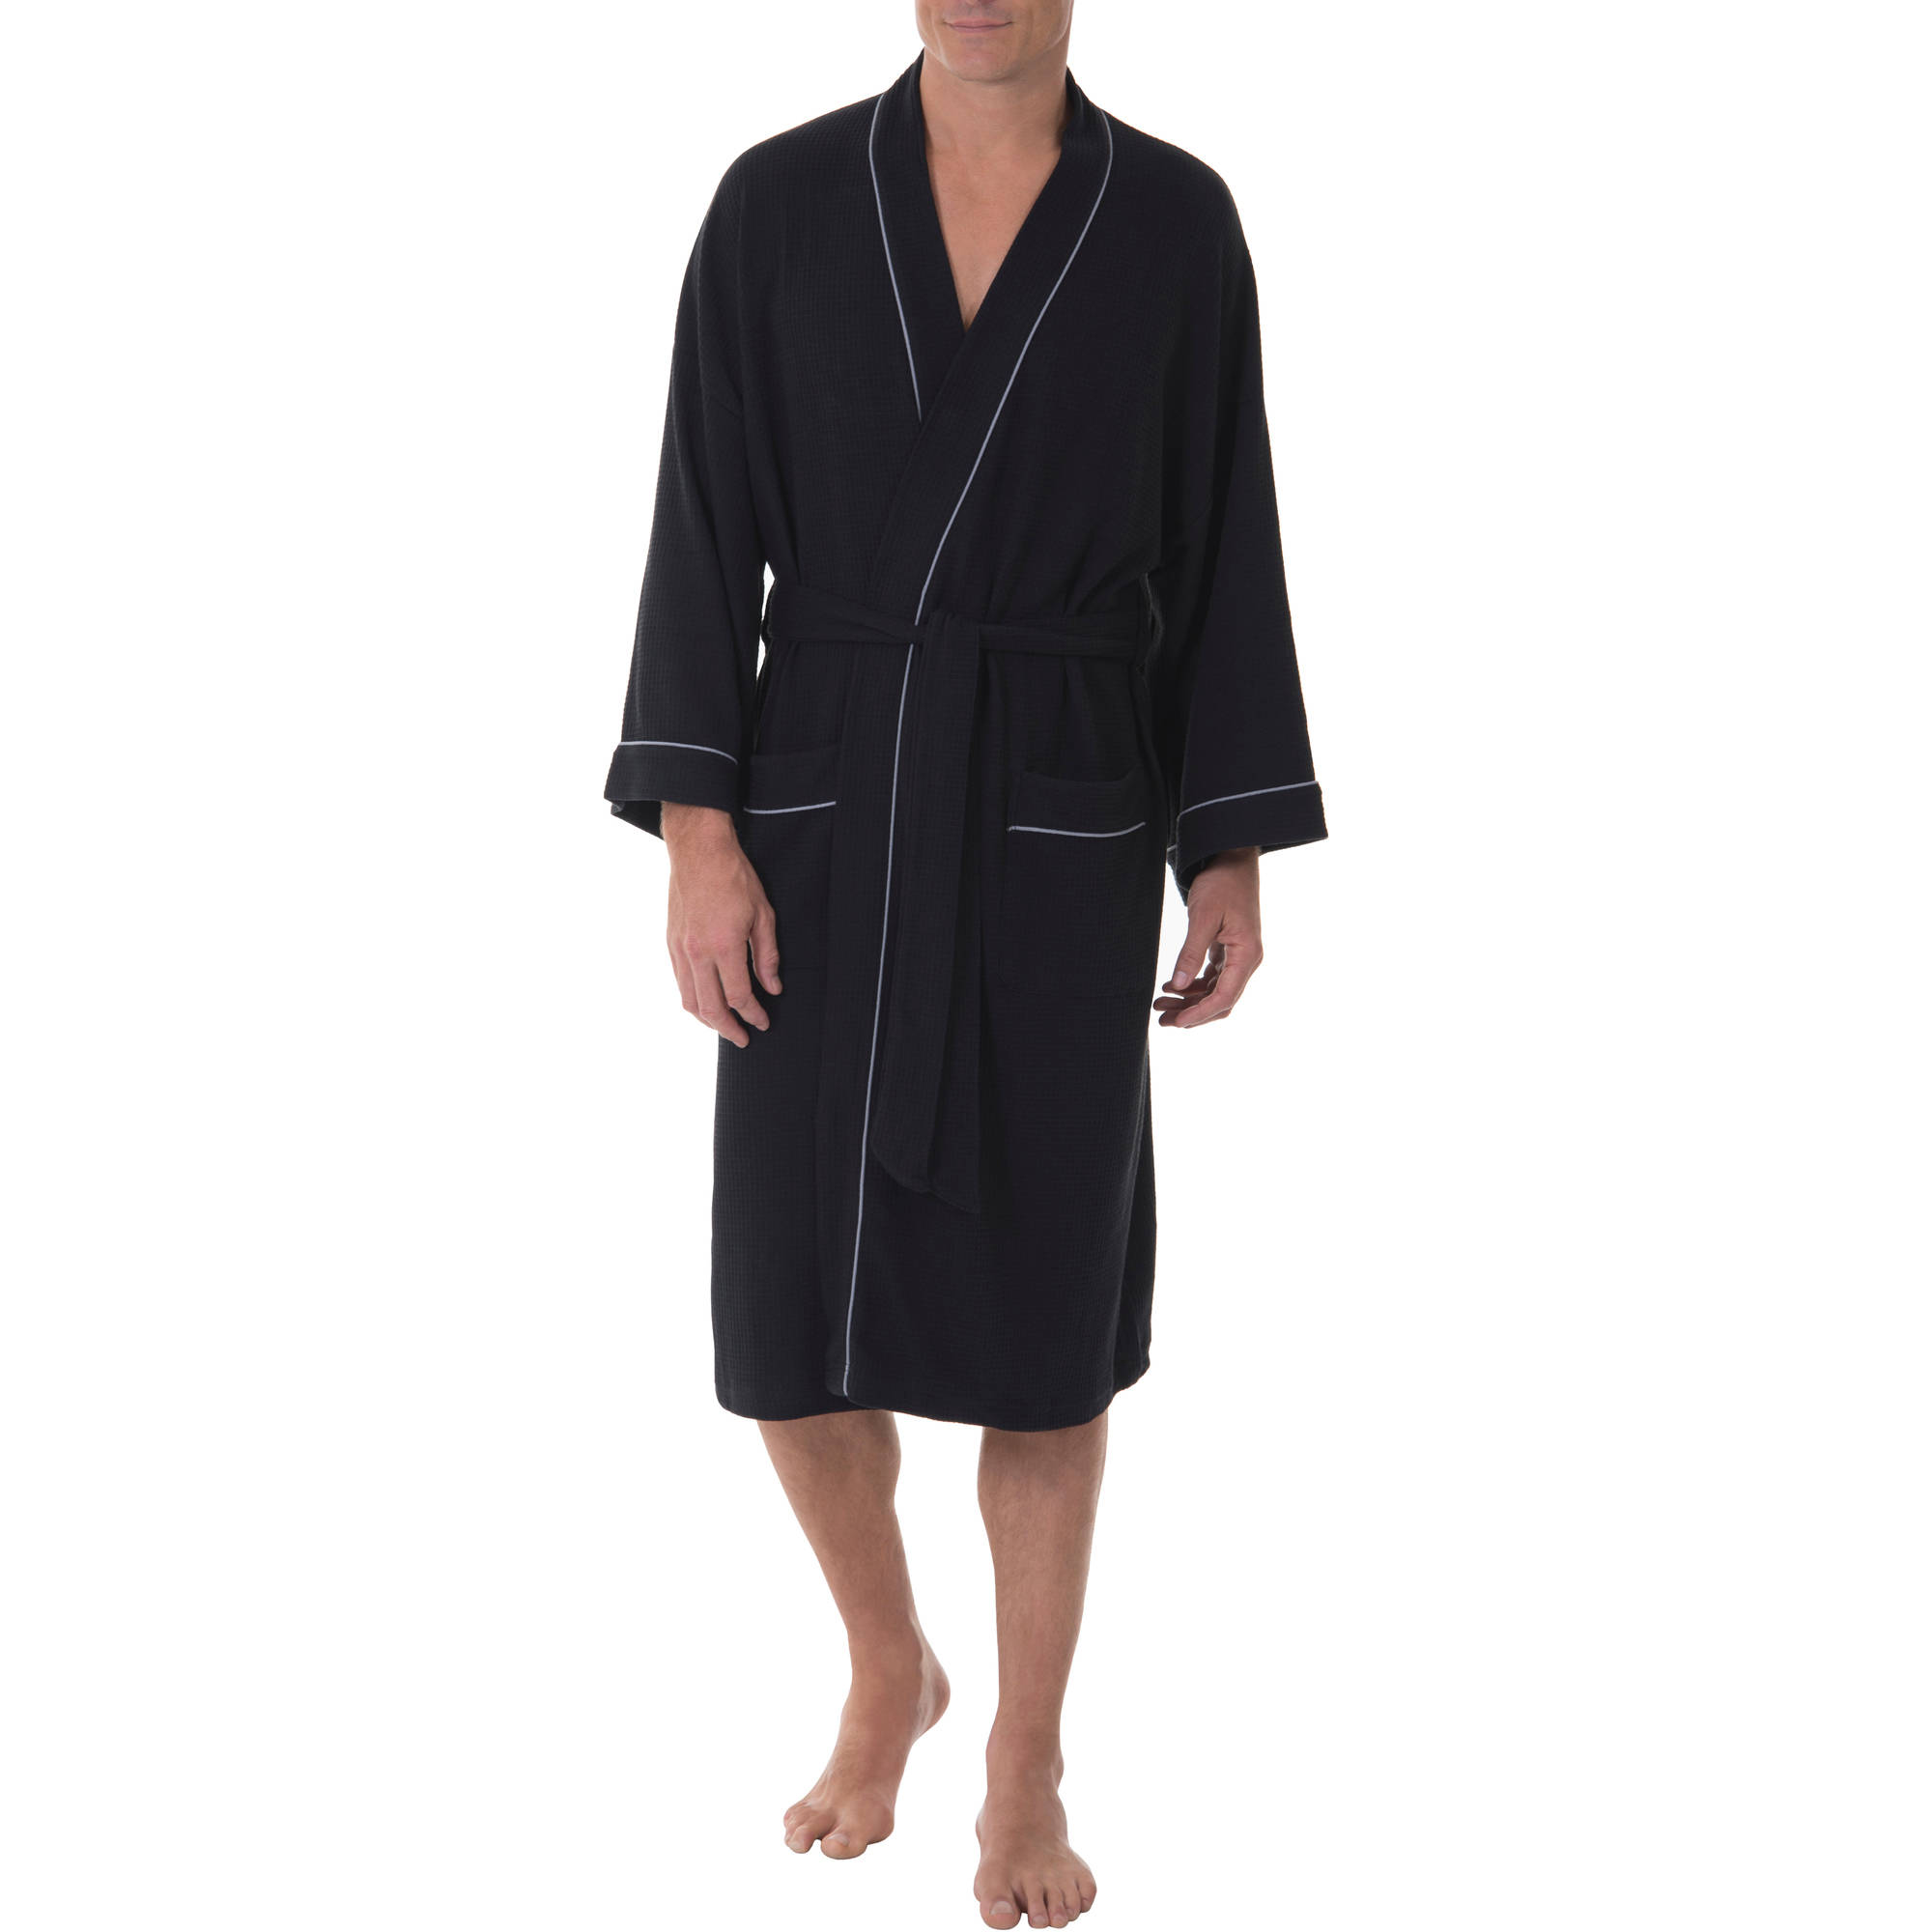 fruit of the loom menu0027s soft touch waffle robe - Mens Bathrobes